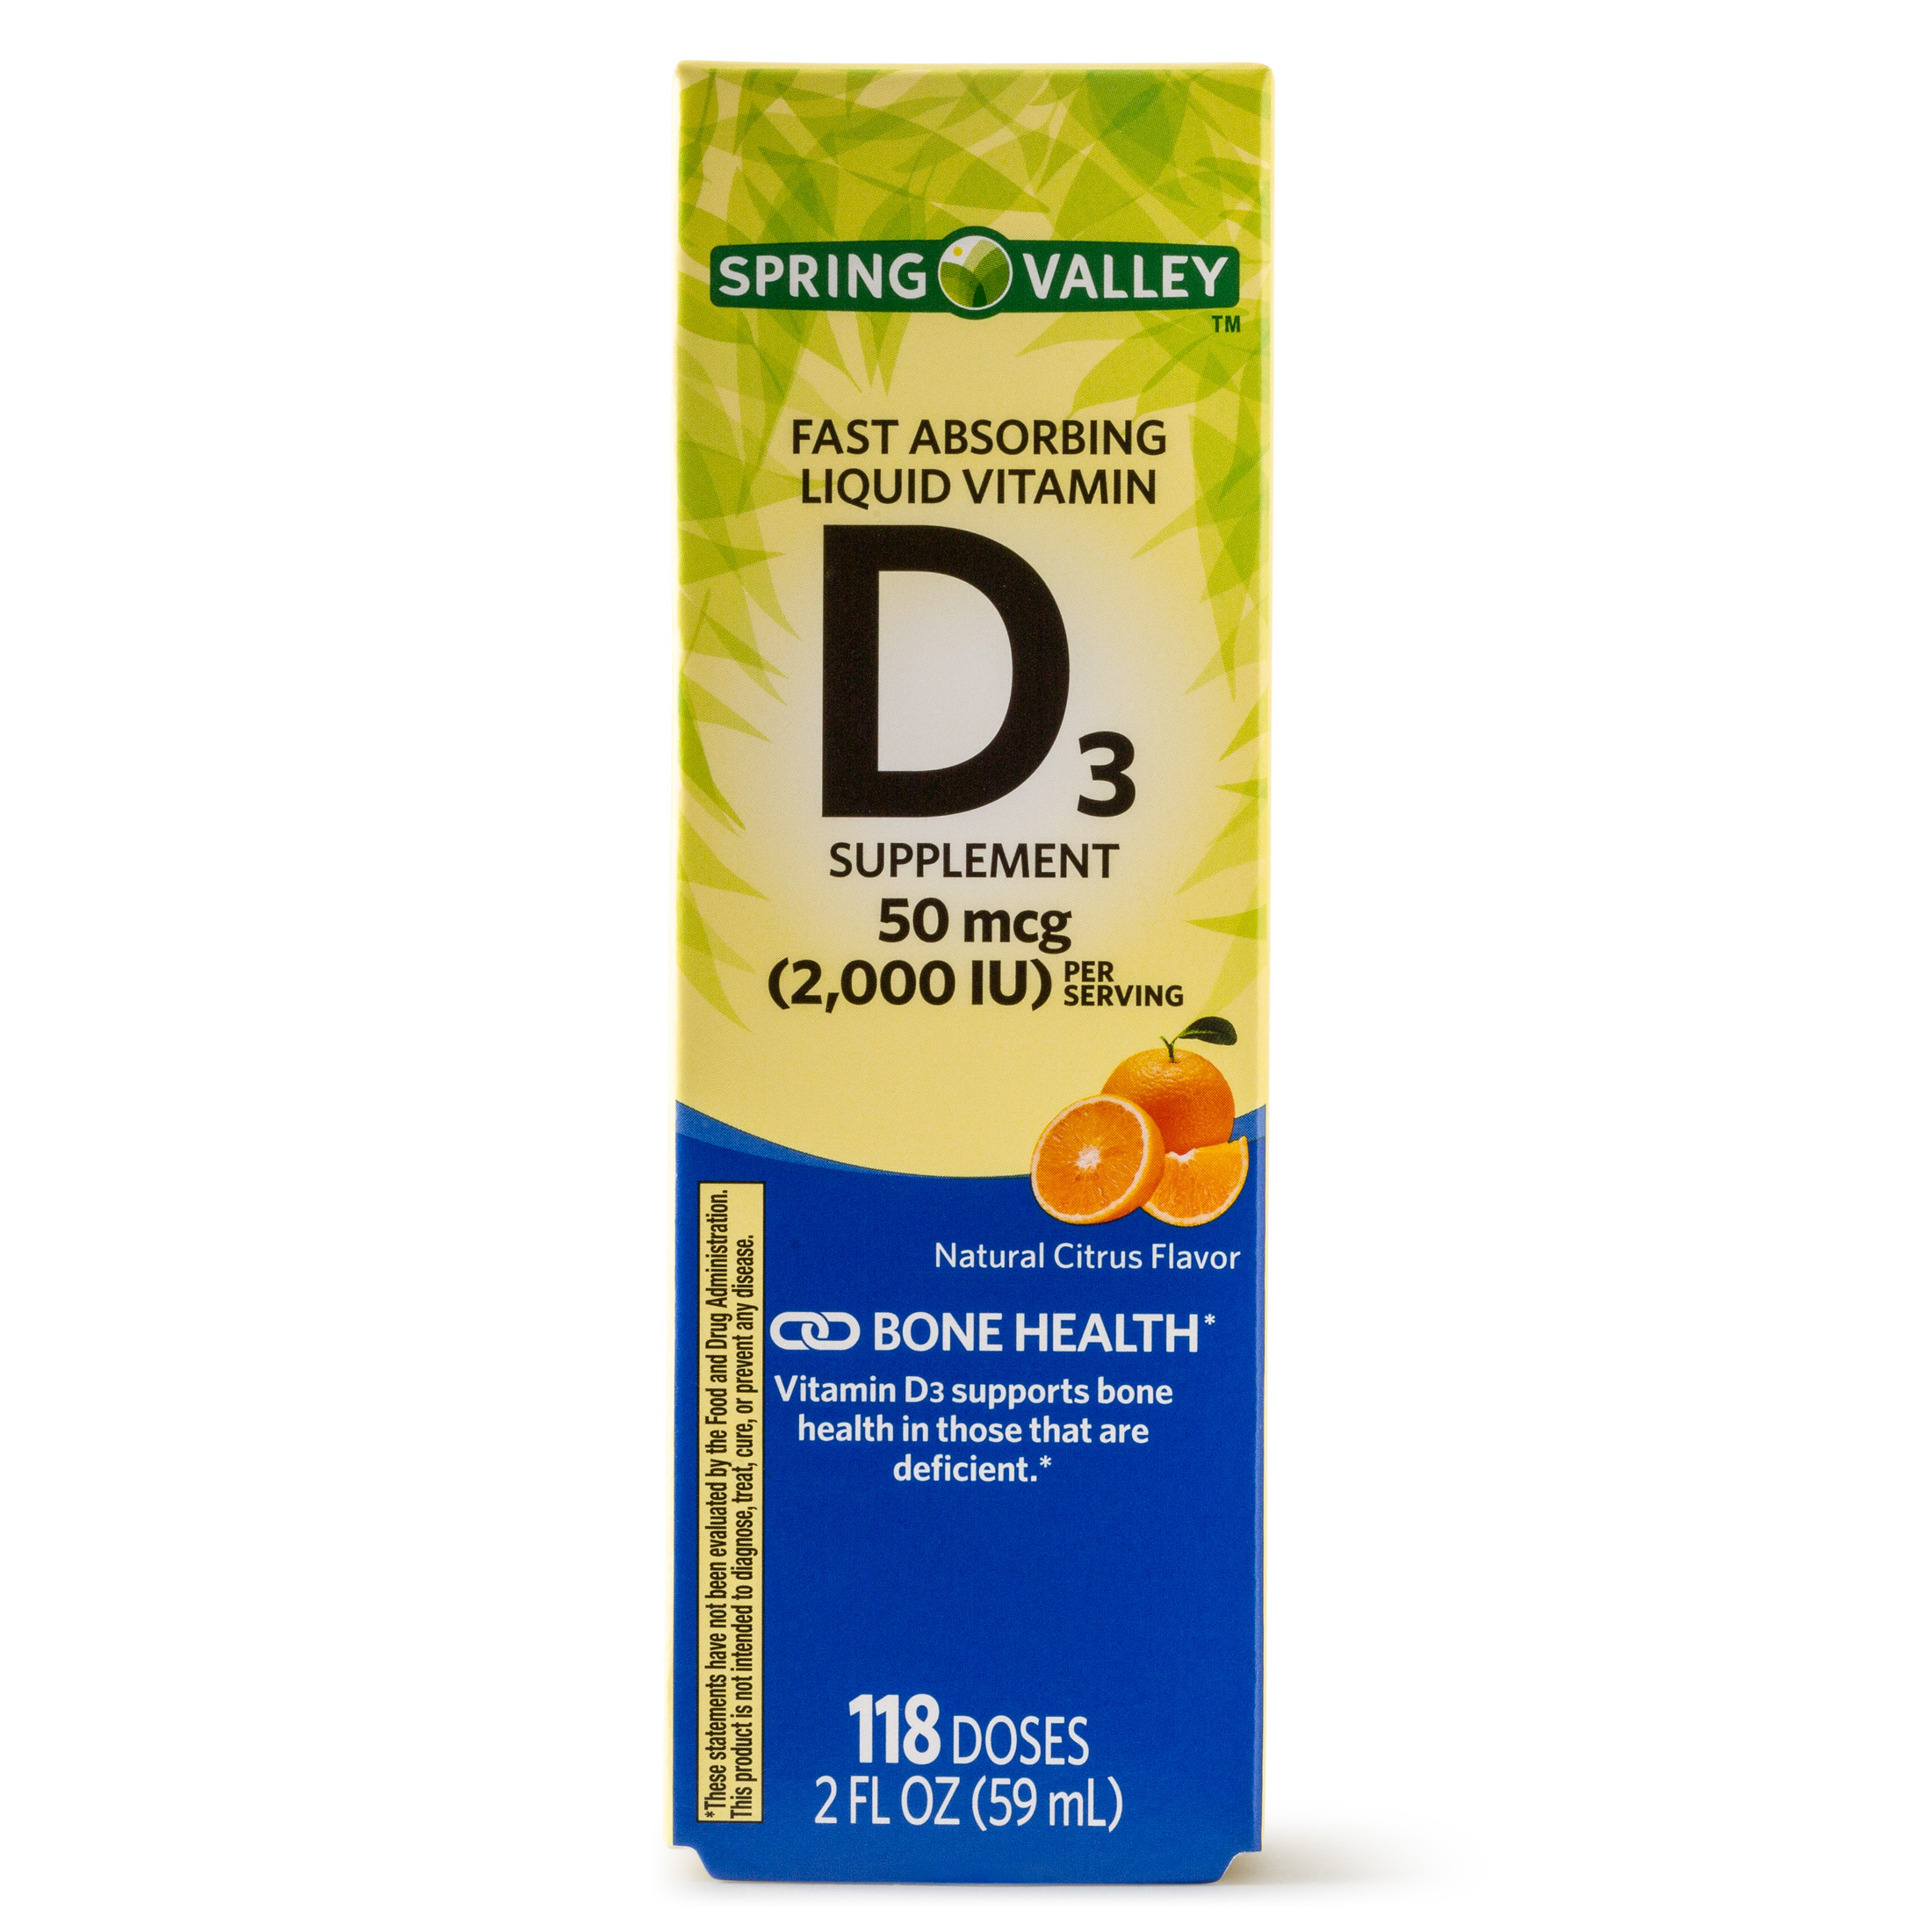 Spring Valley Liquid Vitamin D3, Citrus Flavor, 2000 IU per Serving, 118 Doses, 2 Oz